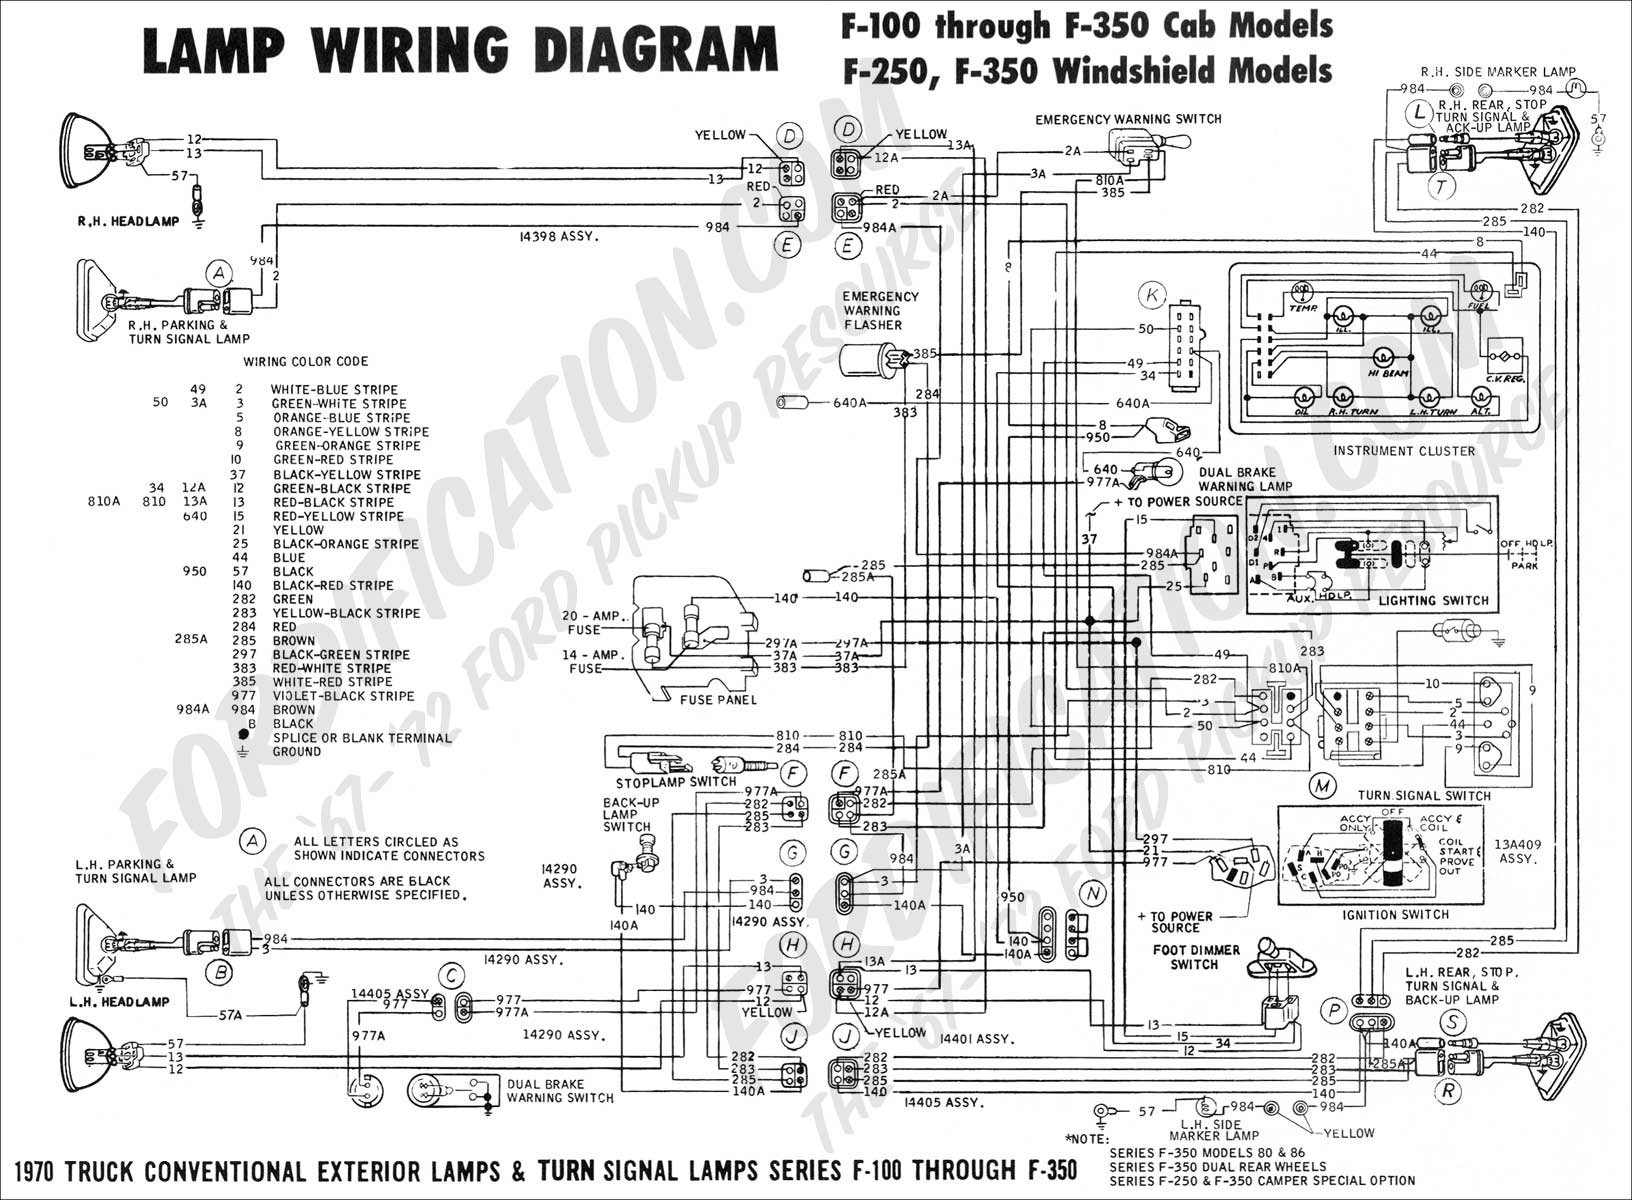 1995 ford Mustang Engine Diagram 2002 F350 7 3 Wiring Schematic Wiring Data  Of 1995 ford